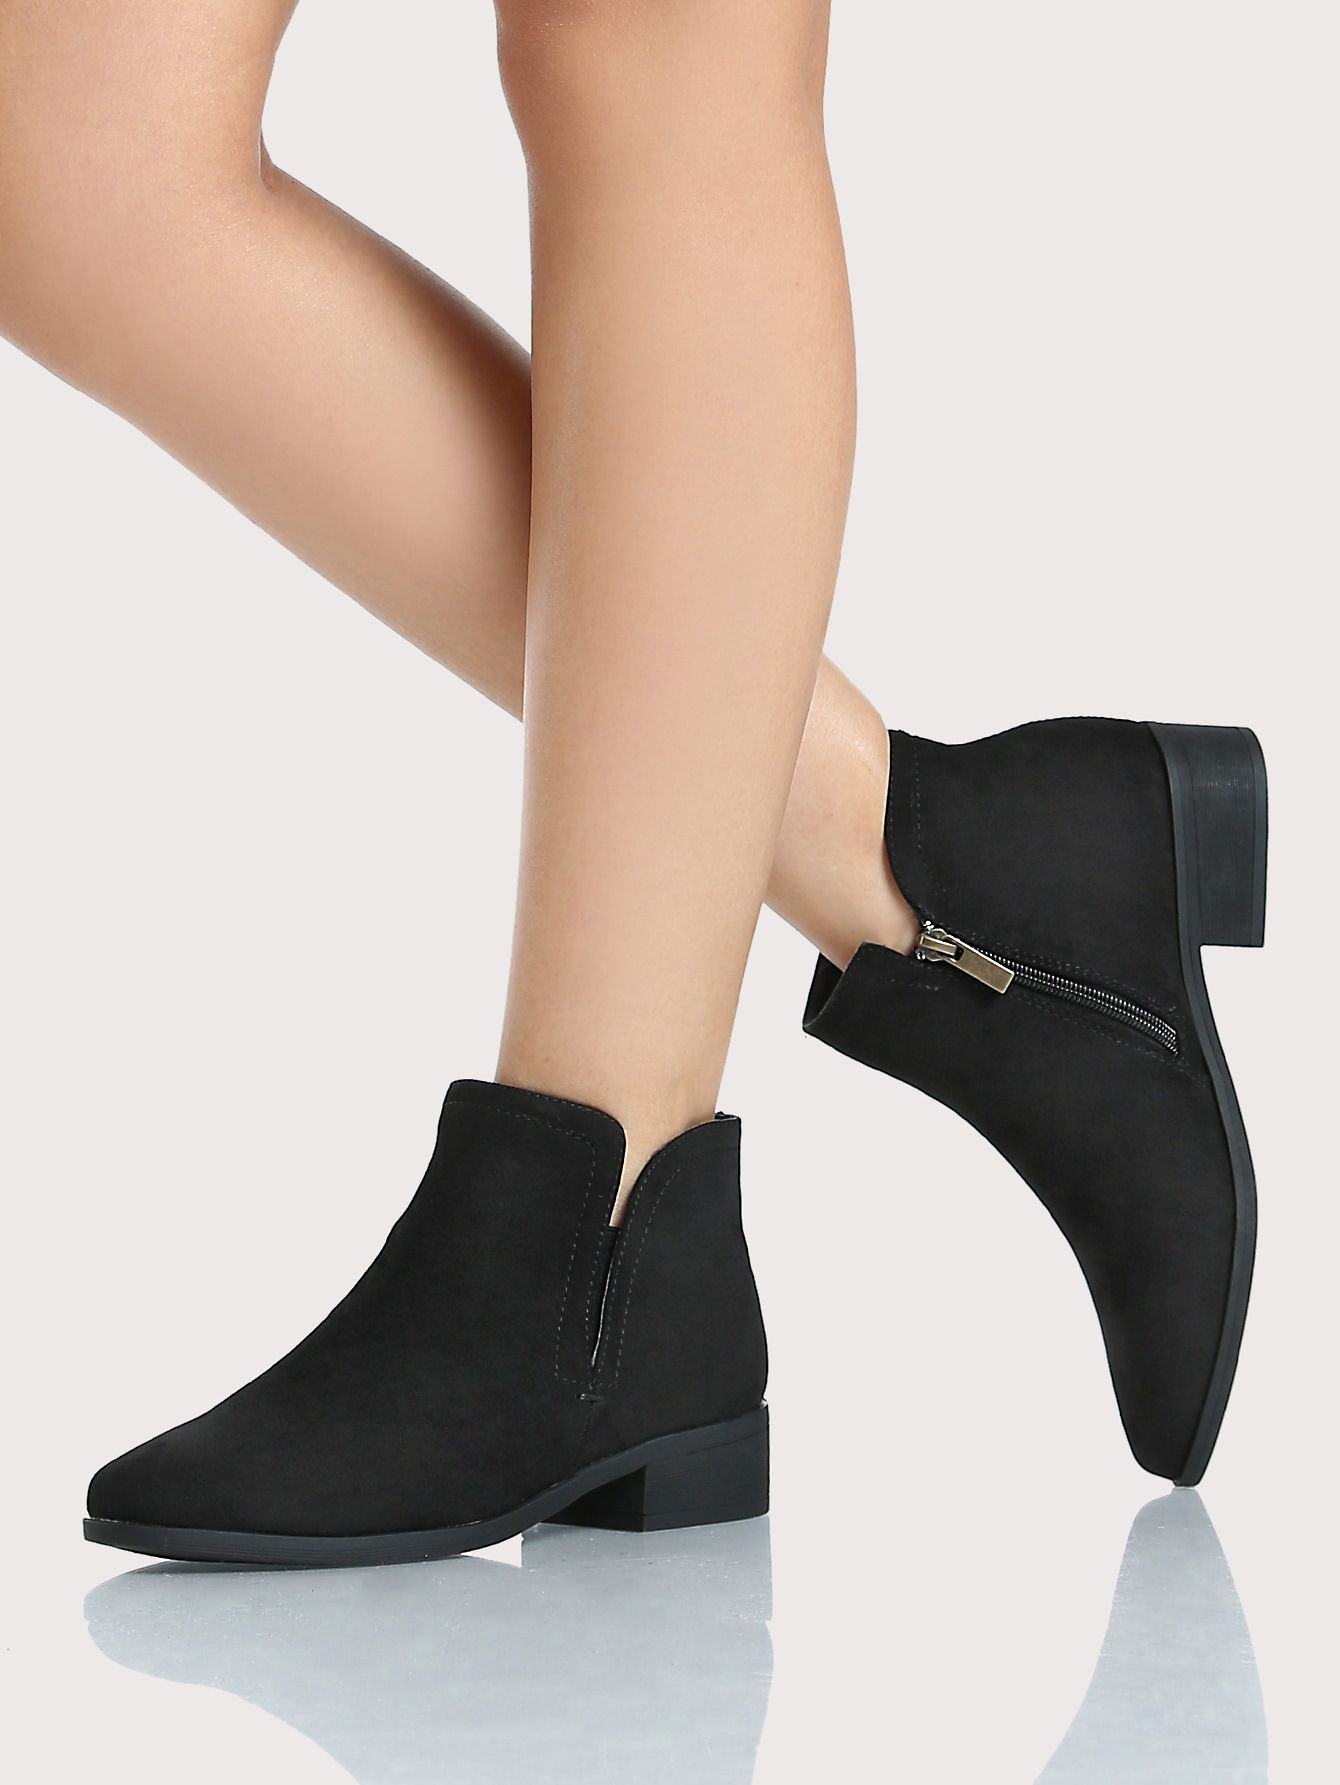 Inexpensive Cute Women s Booties-Boots Under  36 -- Mommy Blogger-Vlogger  -- The Overwhelmed Mommy 0d485b95f7